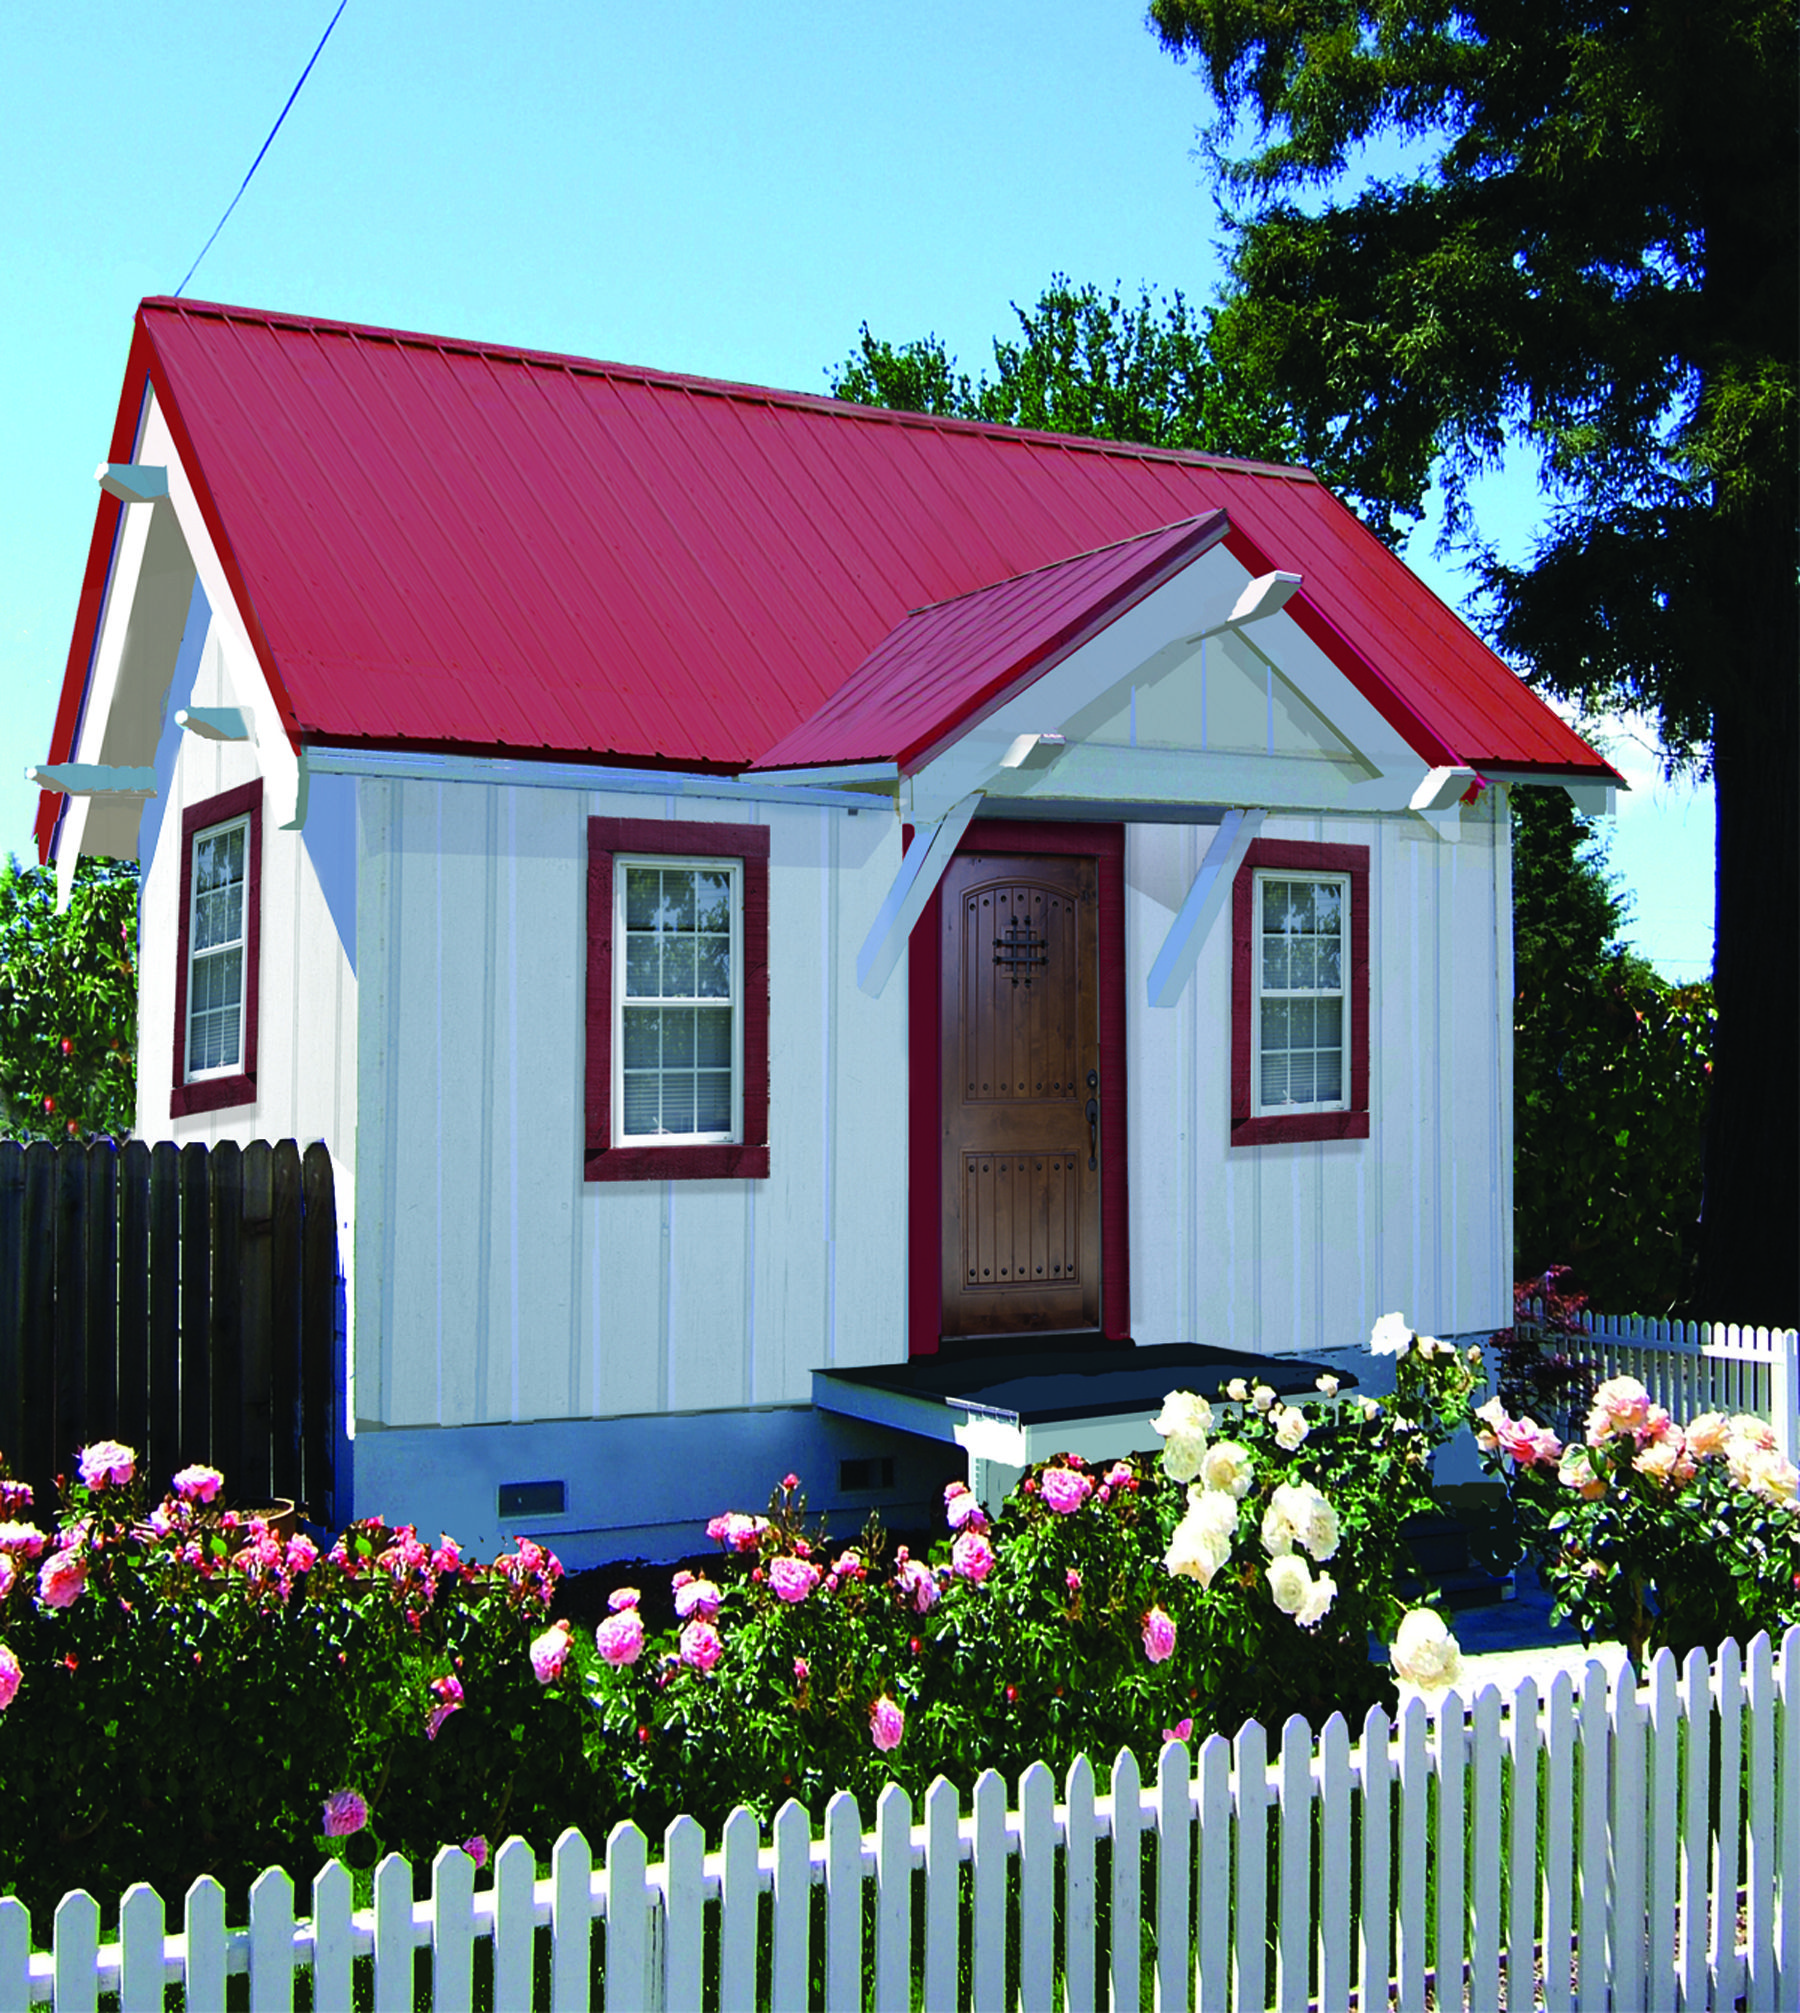 Tumbleweed Tiny House Cottages: Tiny House Cottage Is A Gardeners Delight